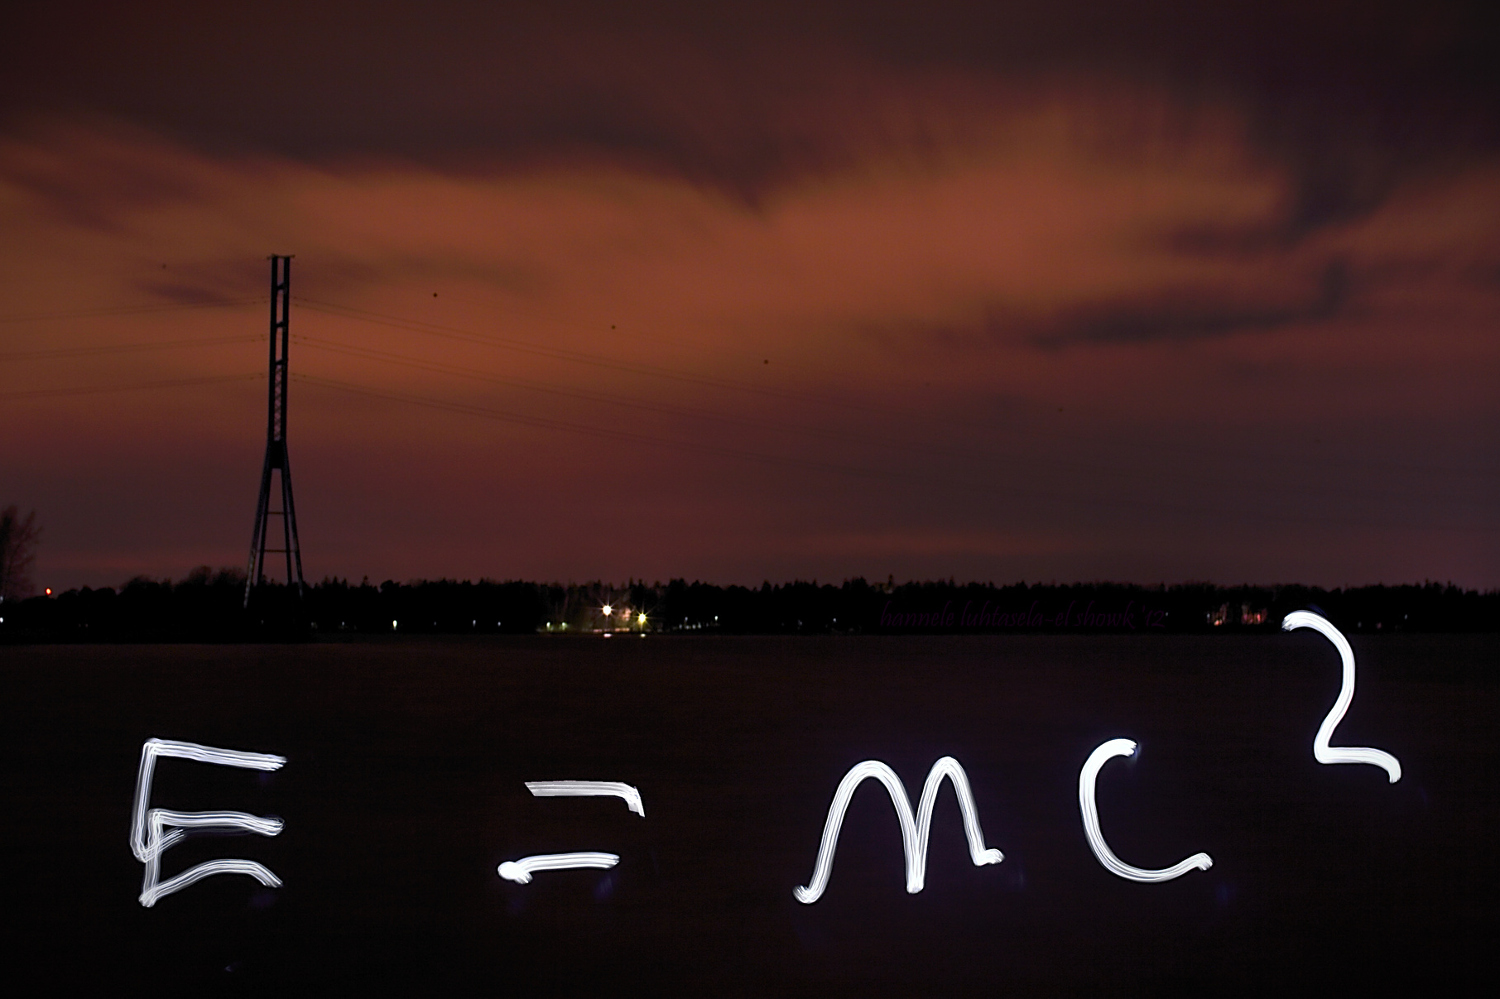 Einstein's famous equation made by light painting.